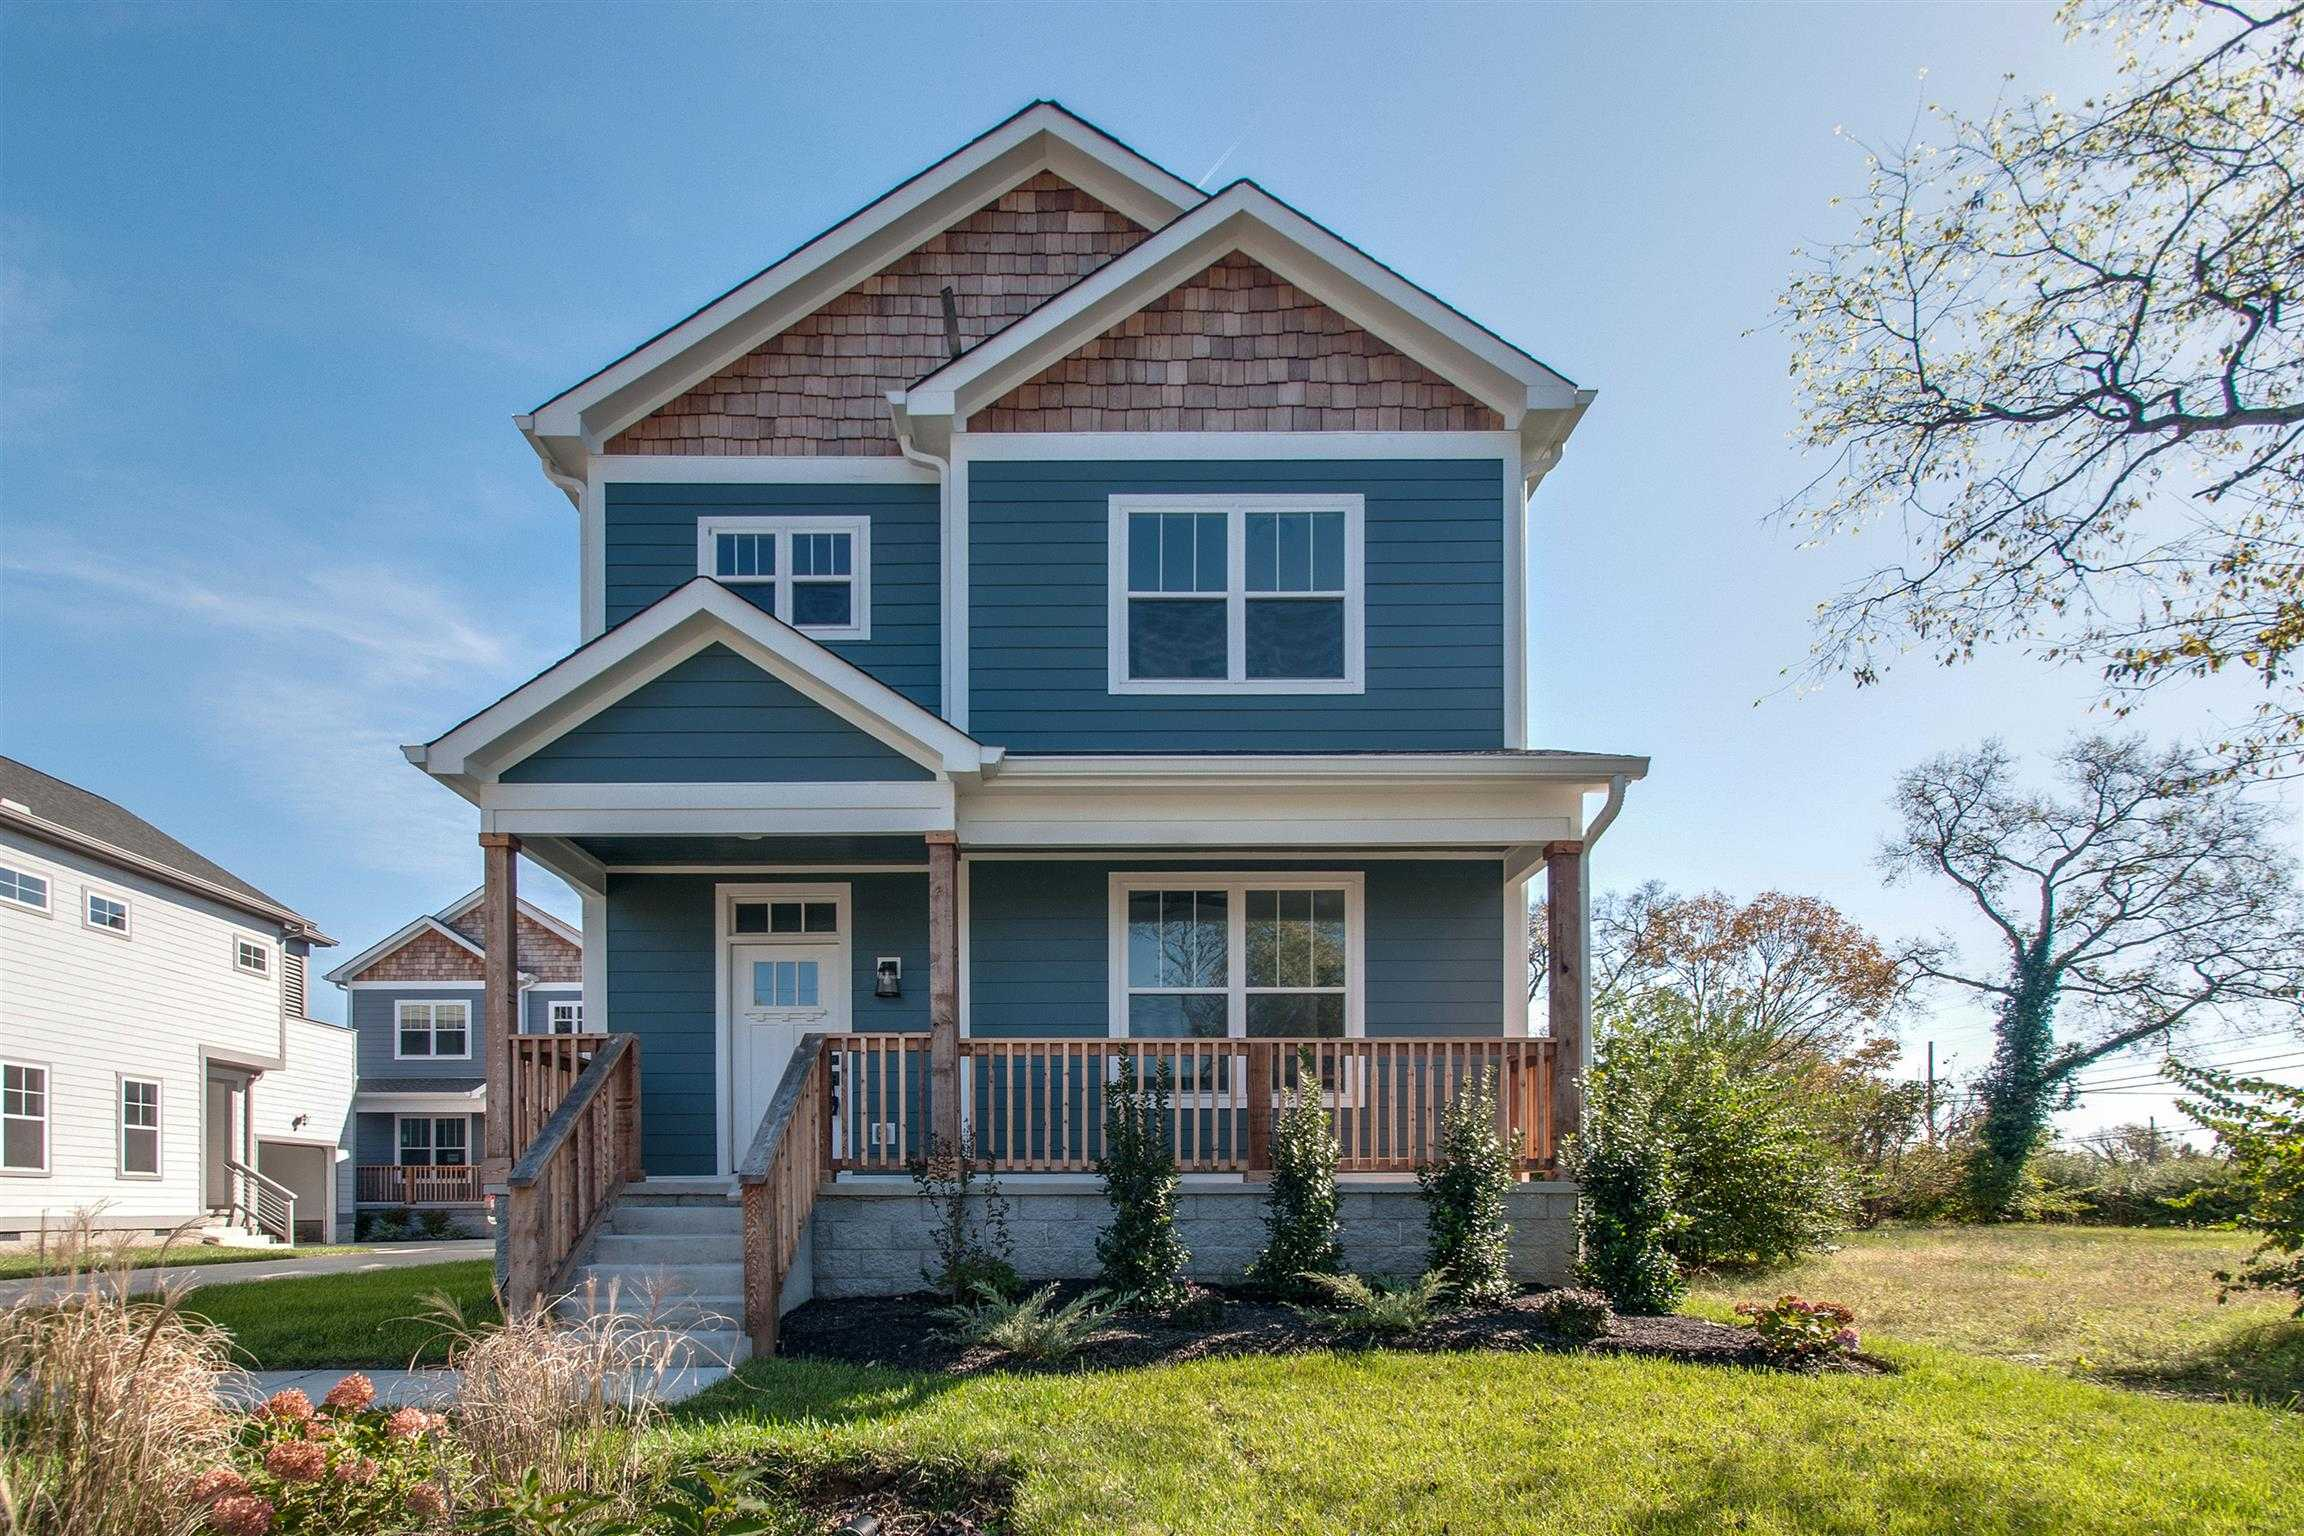 $399,900 - 3Br/3Ba -  for Sale in East Nashville, Nashville